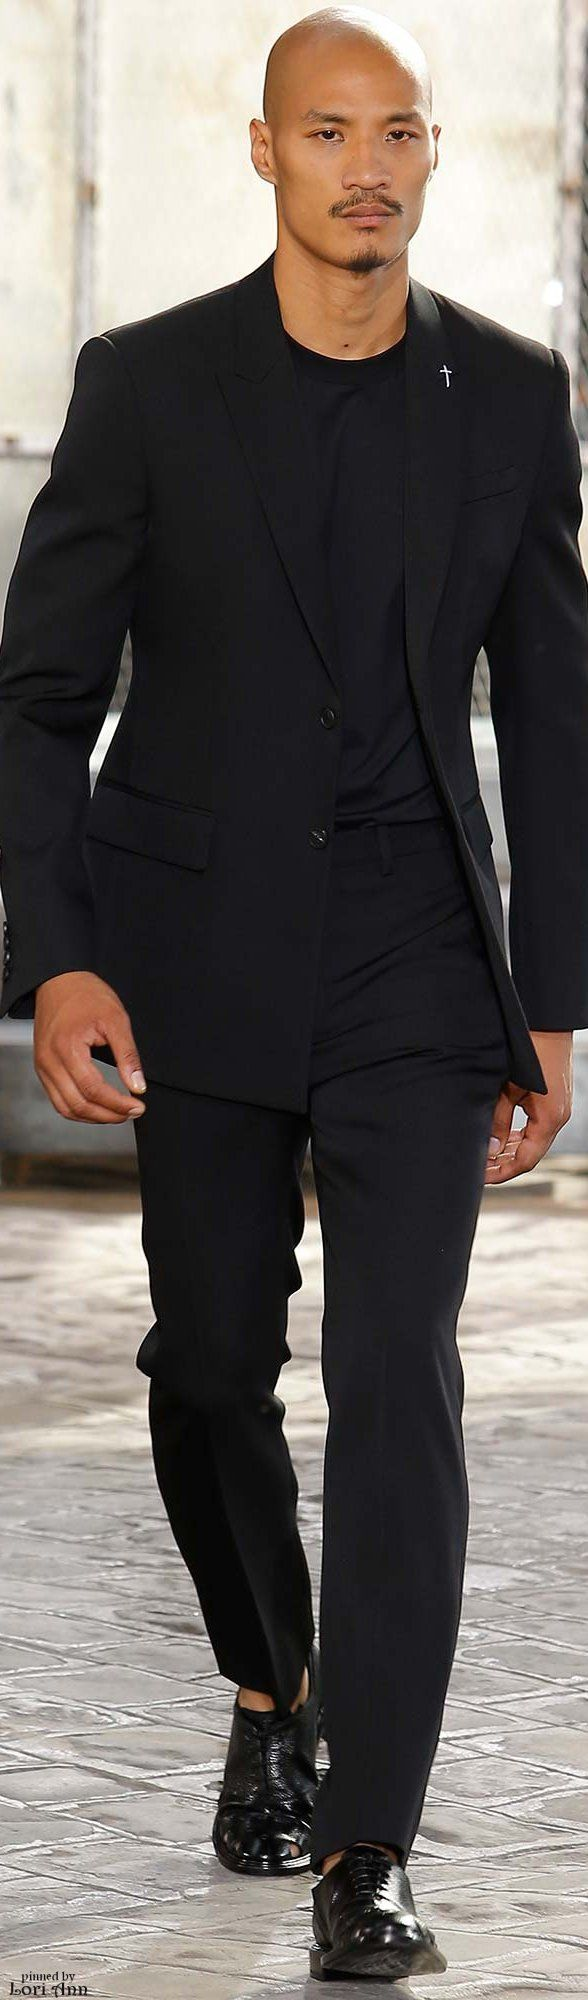 Givenchy Spring 2016 | black suit | black on black | Men's Fashion ...